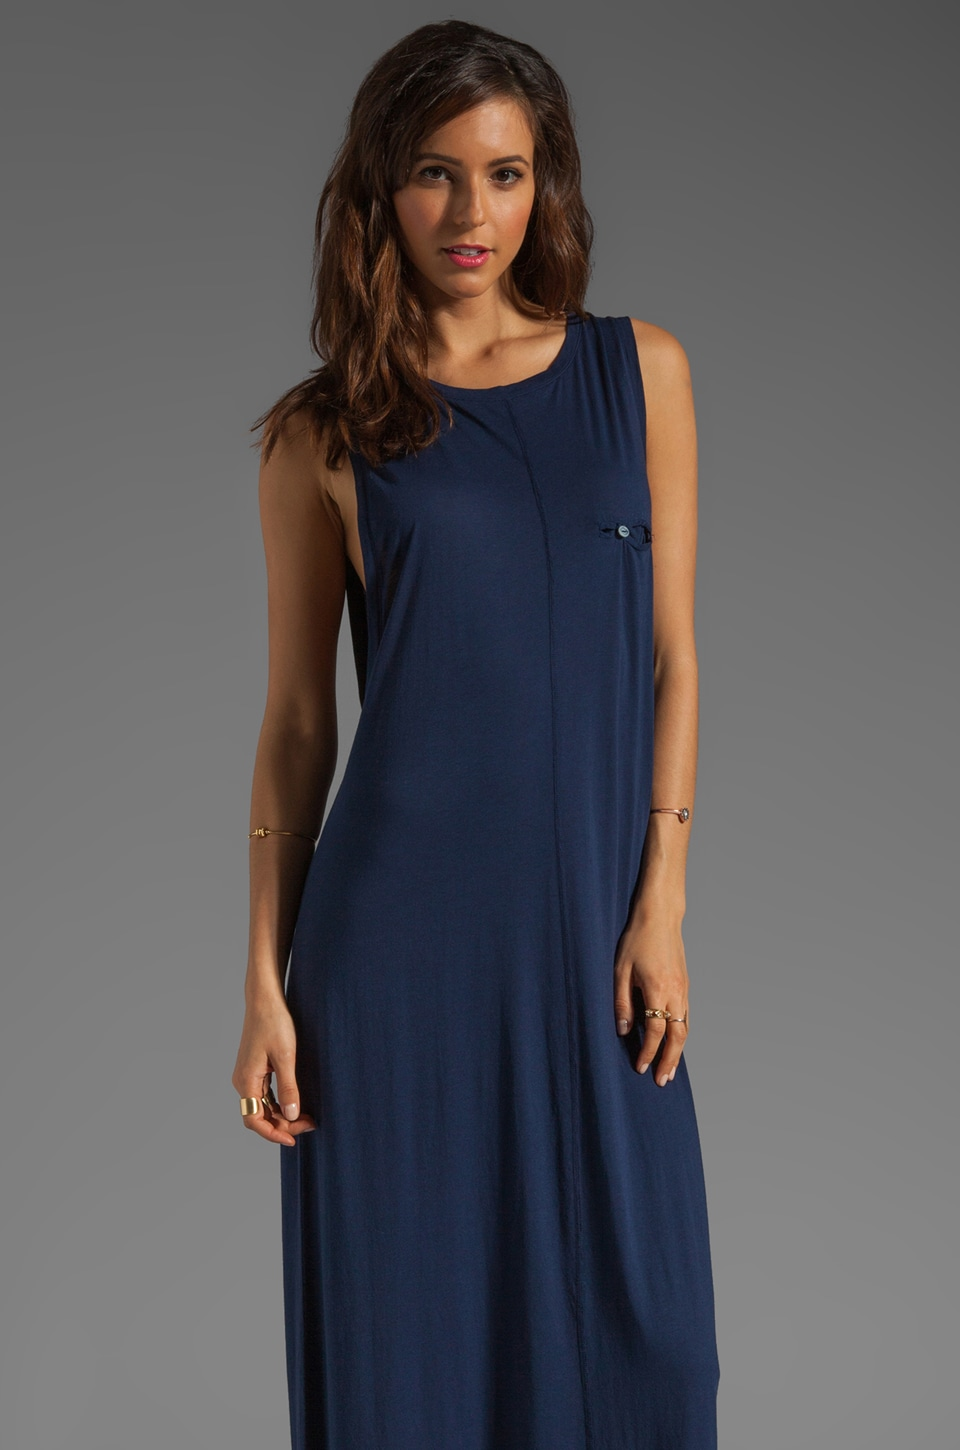 Daftbird Open Sides Back Tied Dress in Navy